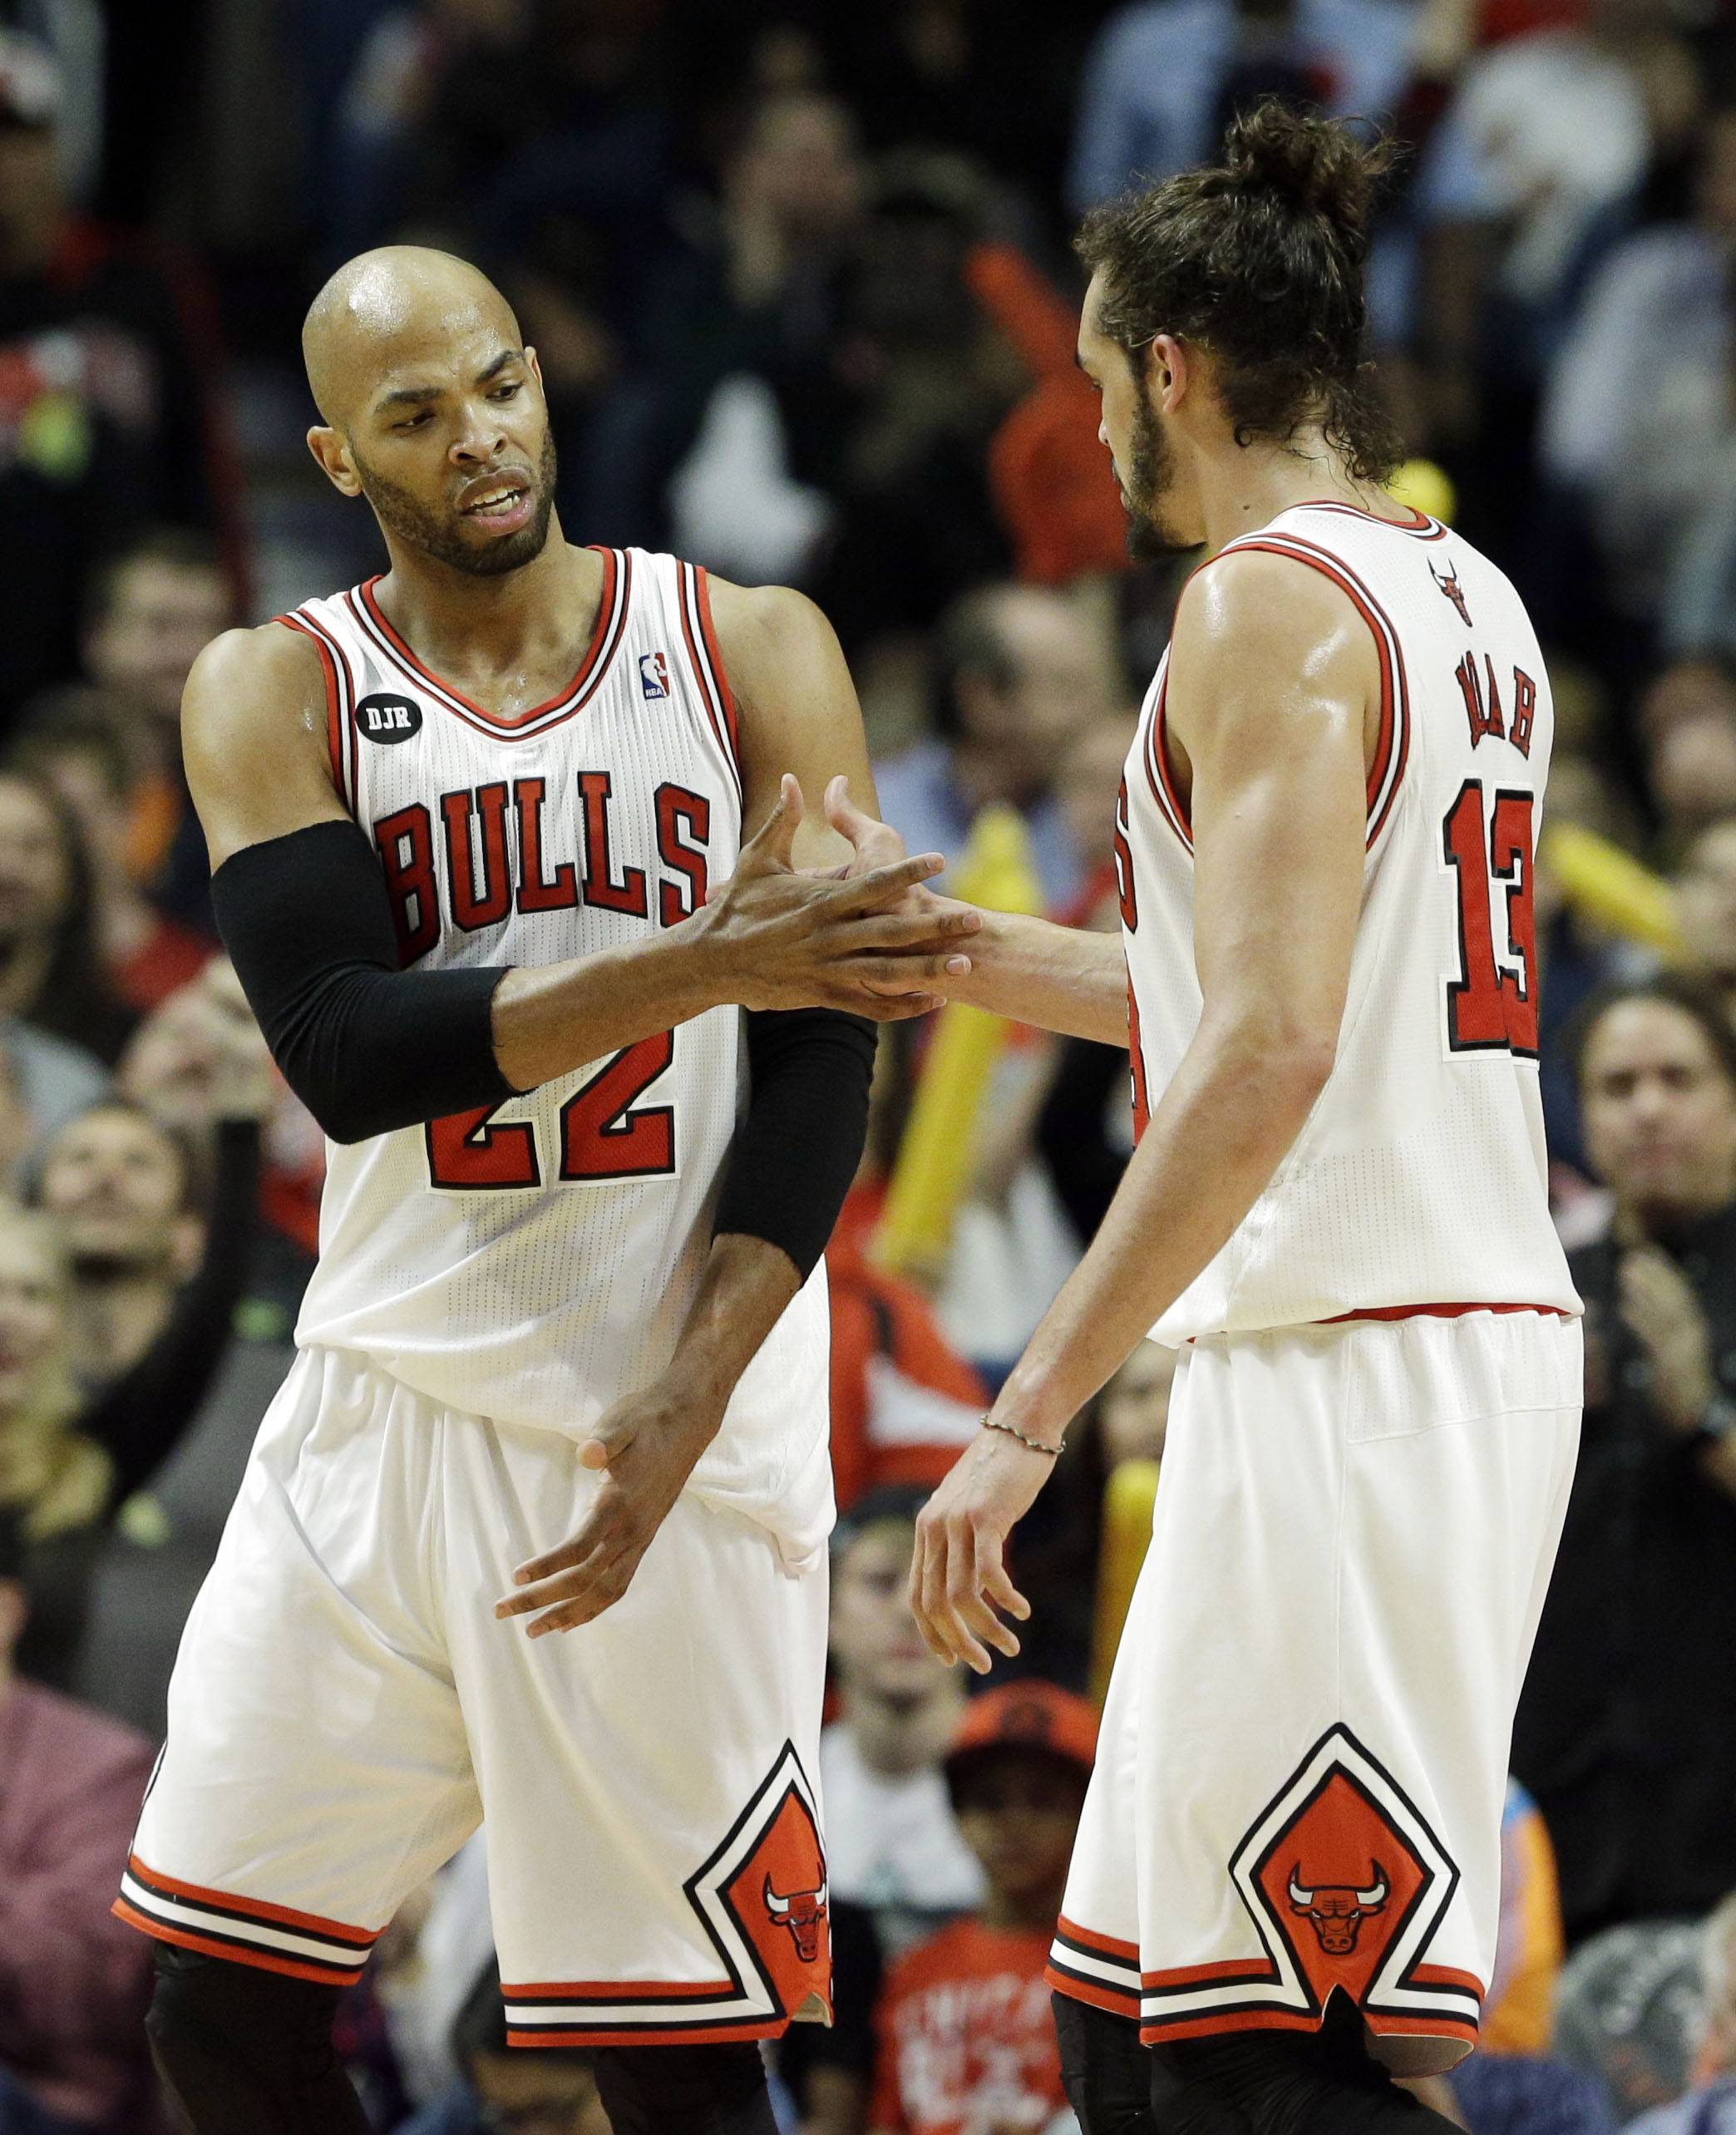 Chicago Bulls forward Taj Gibson, left, celebrates with center Joakim Noah after scoring a basket during the second half of an NBA basketball game against the Detroit Pistons in Chicago on Friday, April 11, 2014. The Bulls won 106-98. (AP Photo/Nam Y. Huh)